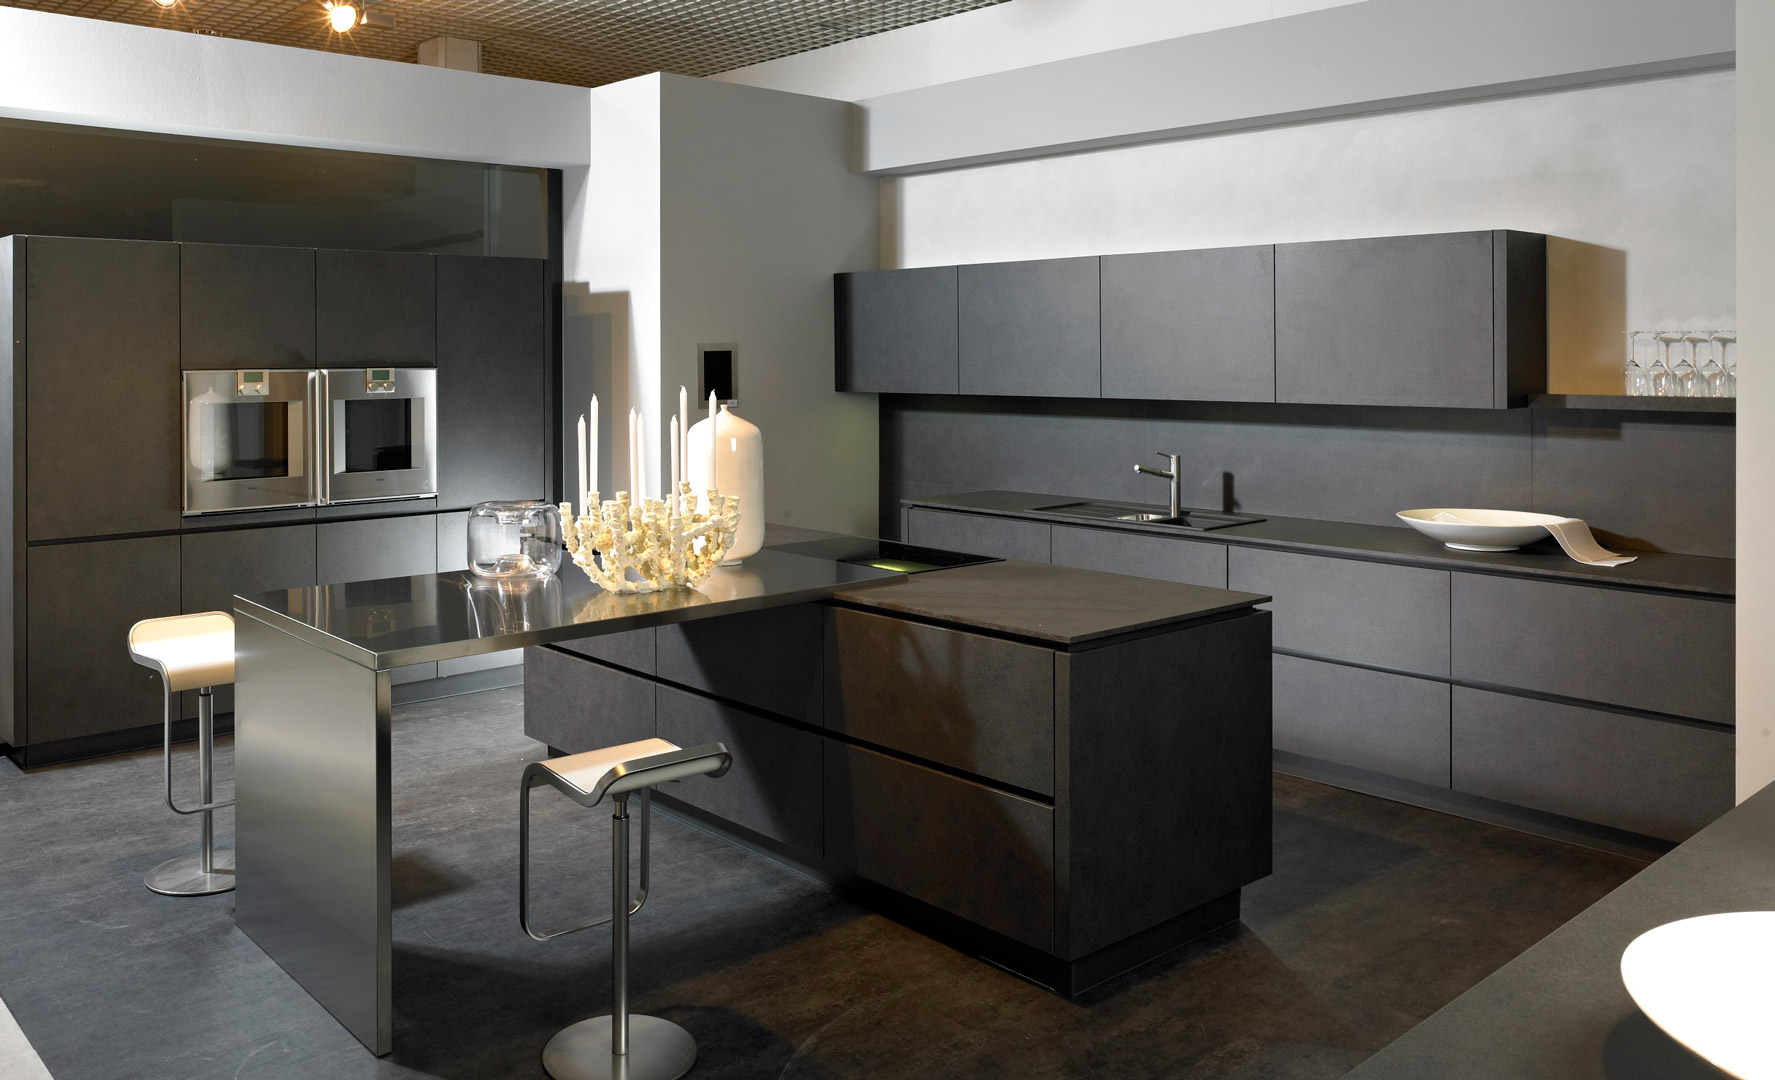 Alno Kitchens Fitted Kitchens By Alno Sussex Surrey London